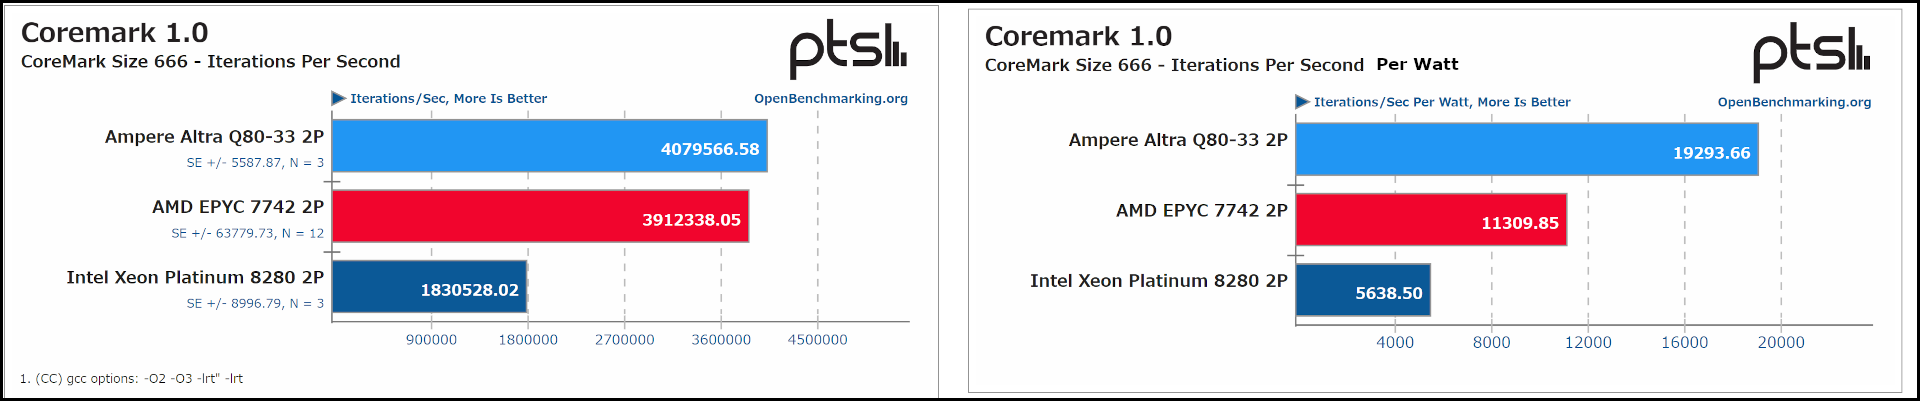 A graphical representation showing the performance for 3 separate processors using the Coremark 1.0 benchmark test.